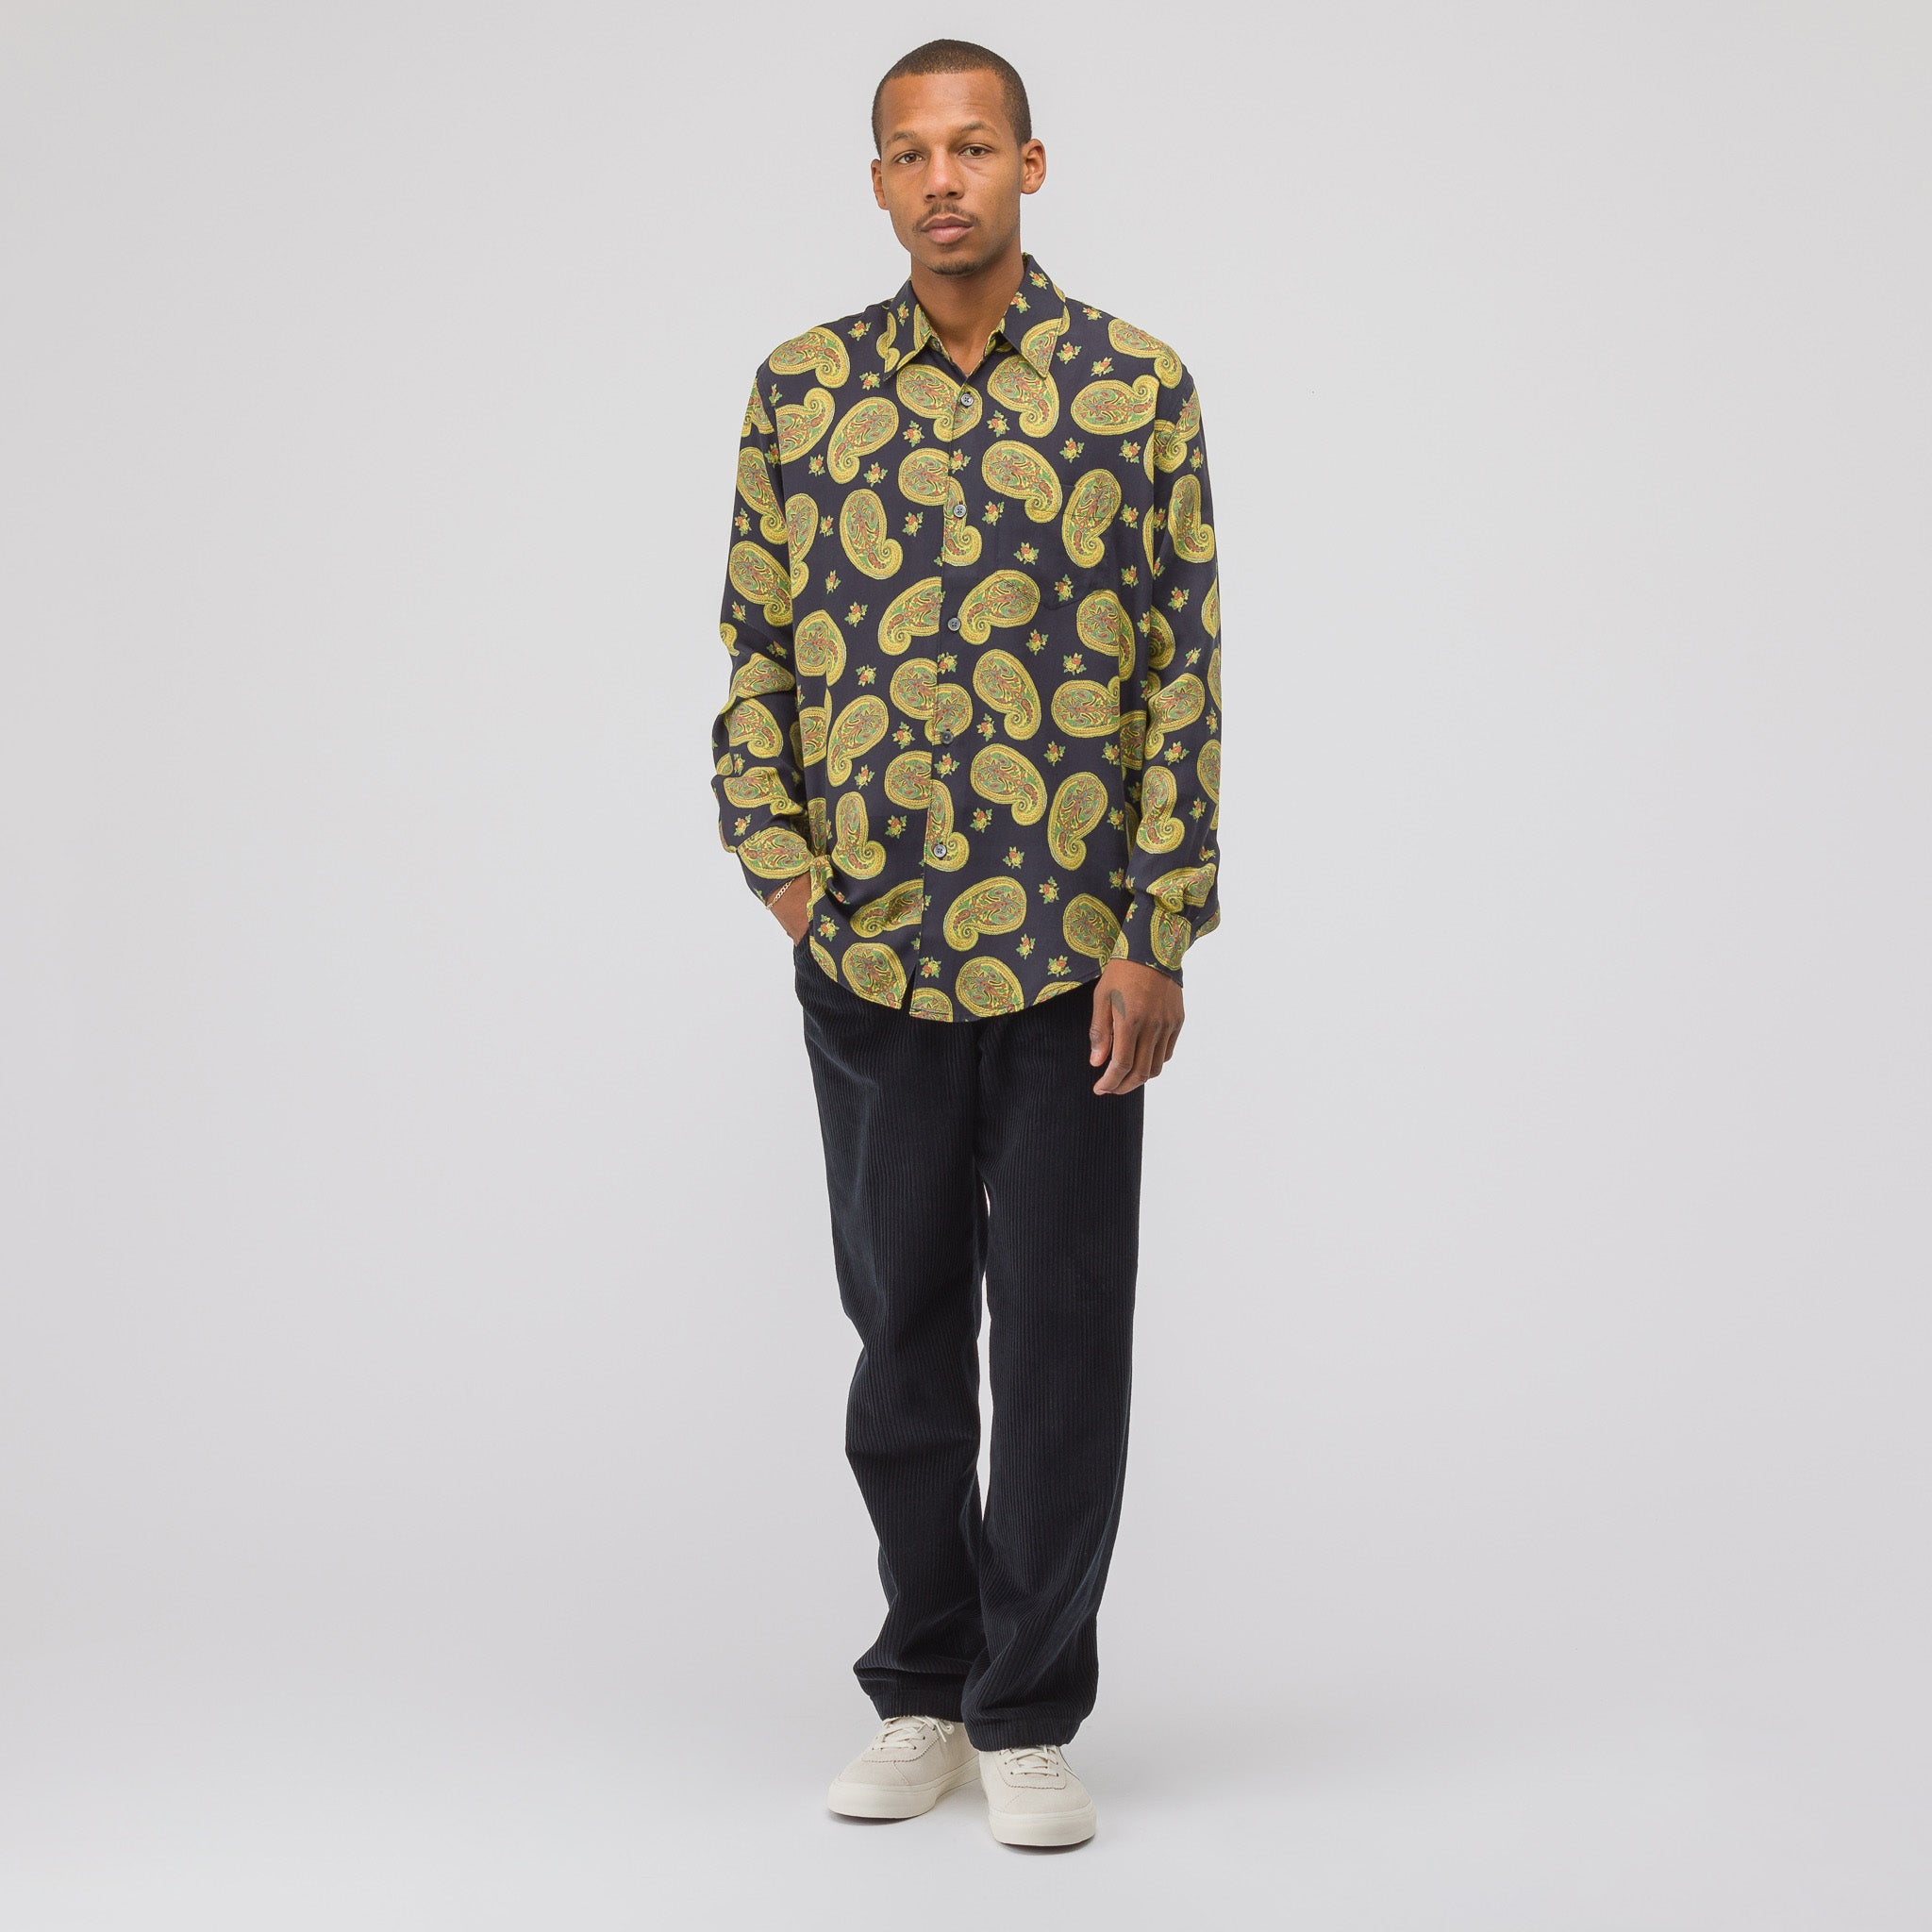 Initial Shirt in Large Black Paisley